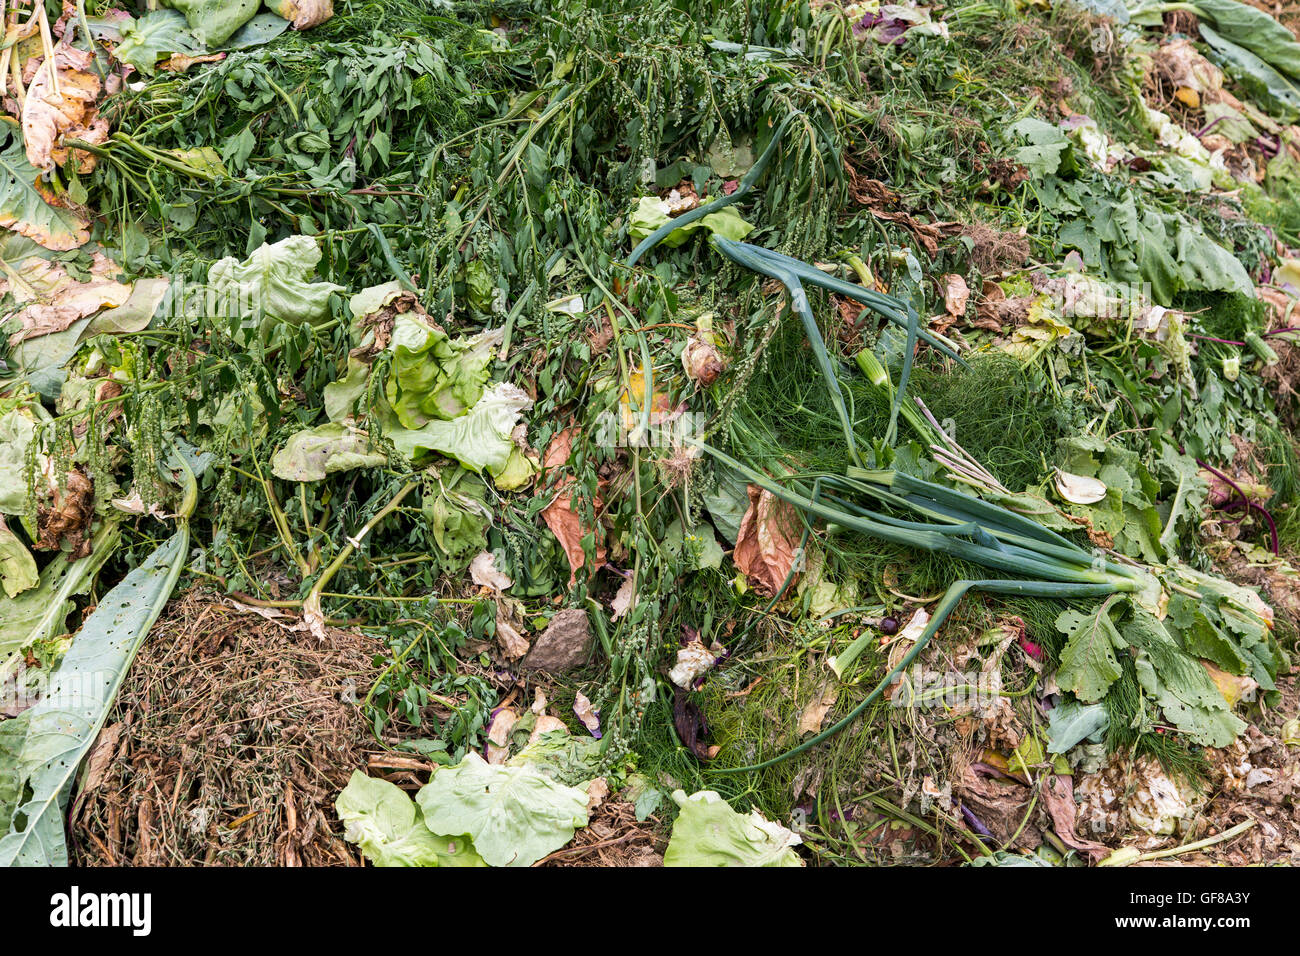 Kitchen garden, gardening, vegetable gardening, compost heaps, recycling, Stock Photo